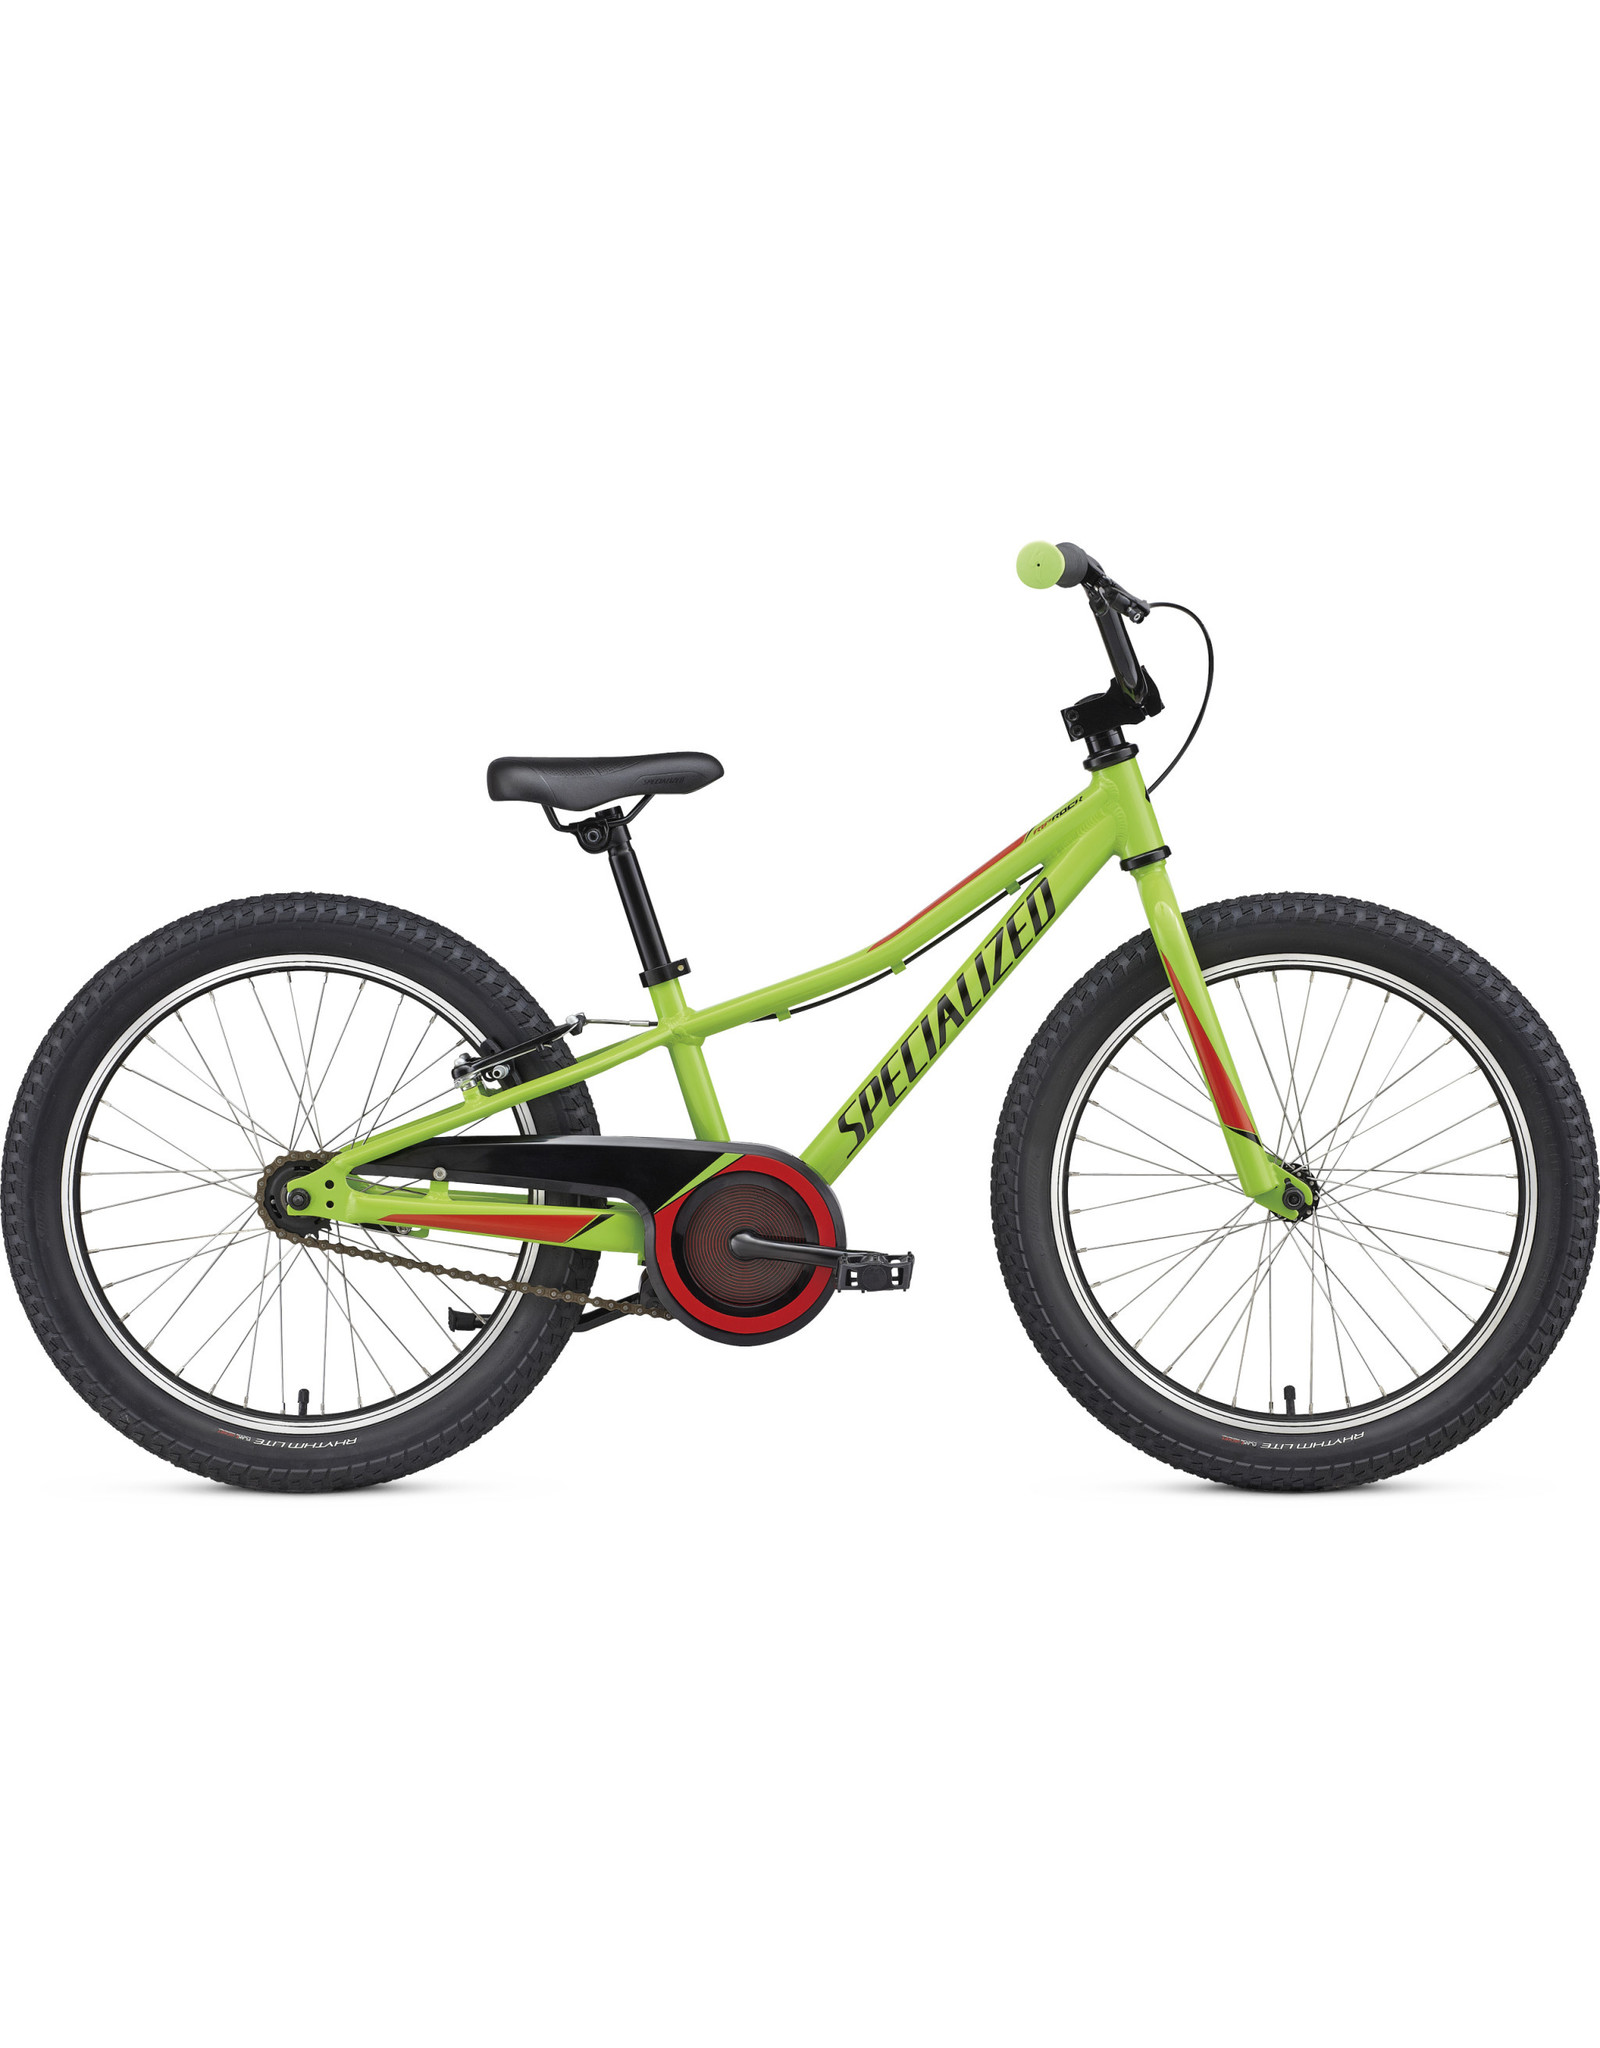 Specialized 21 Spec Riprock 20 Grn/Red/Blk